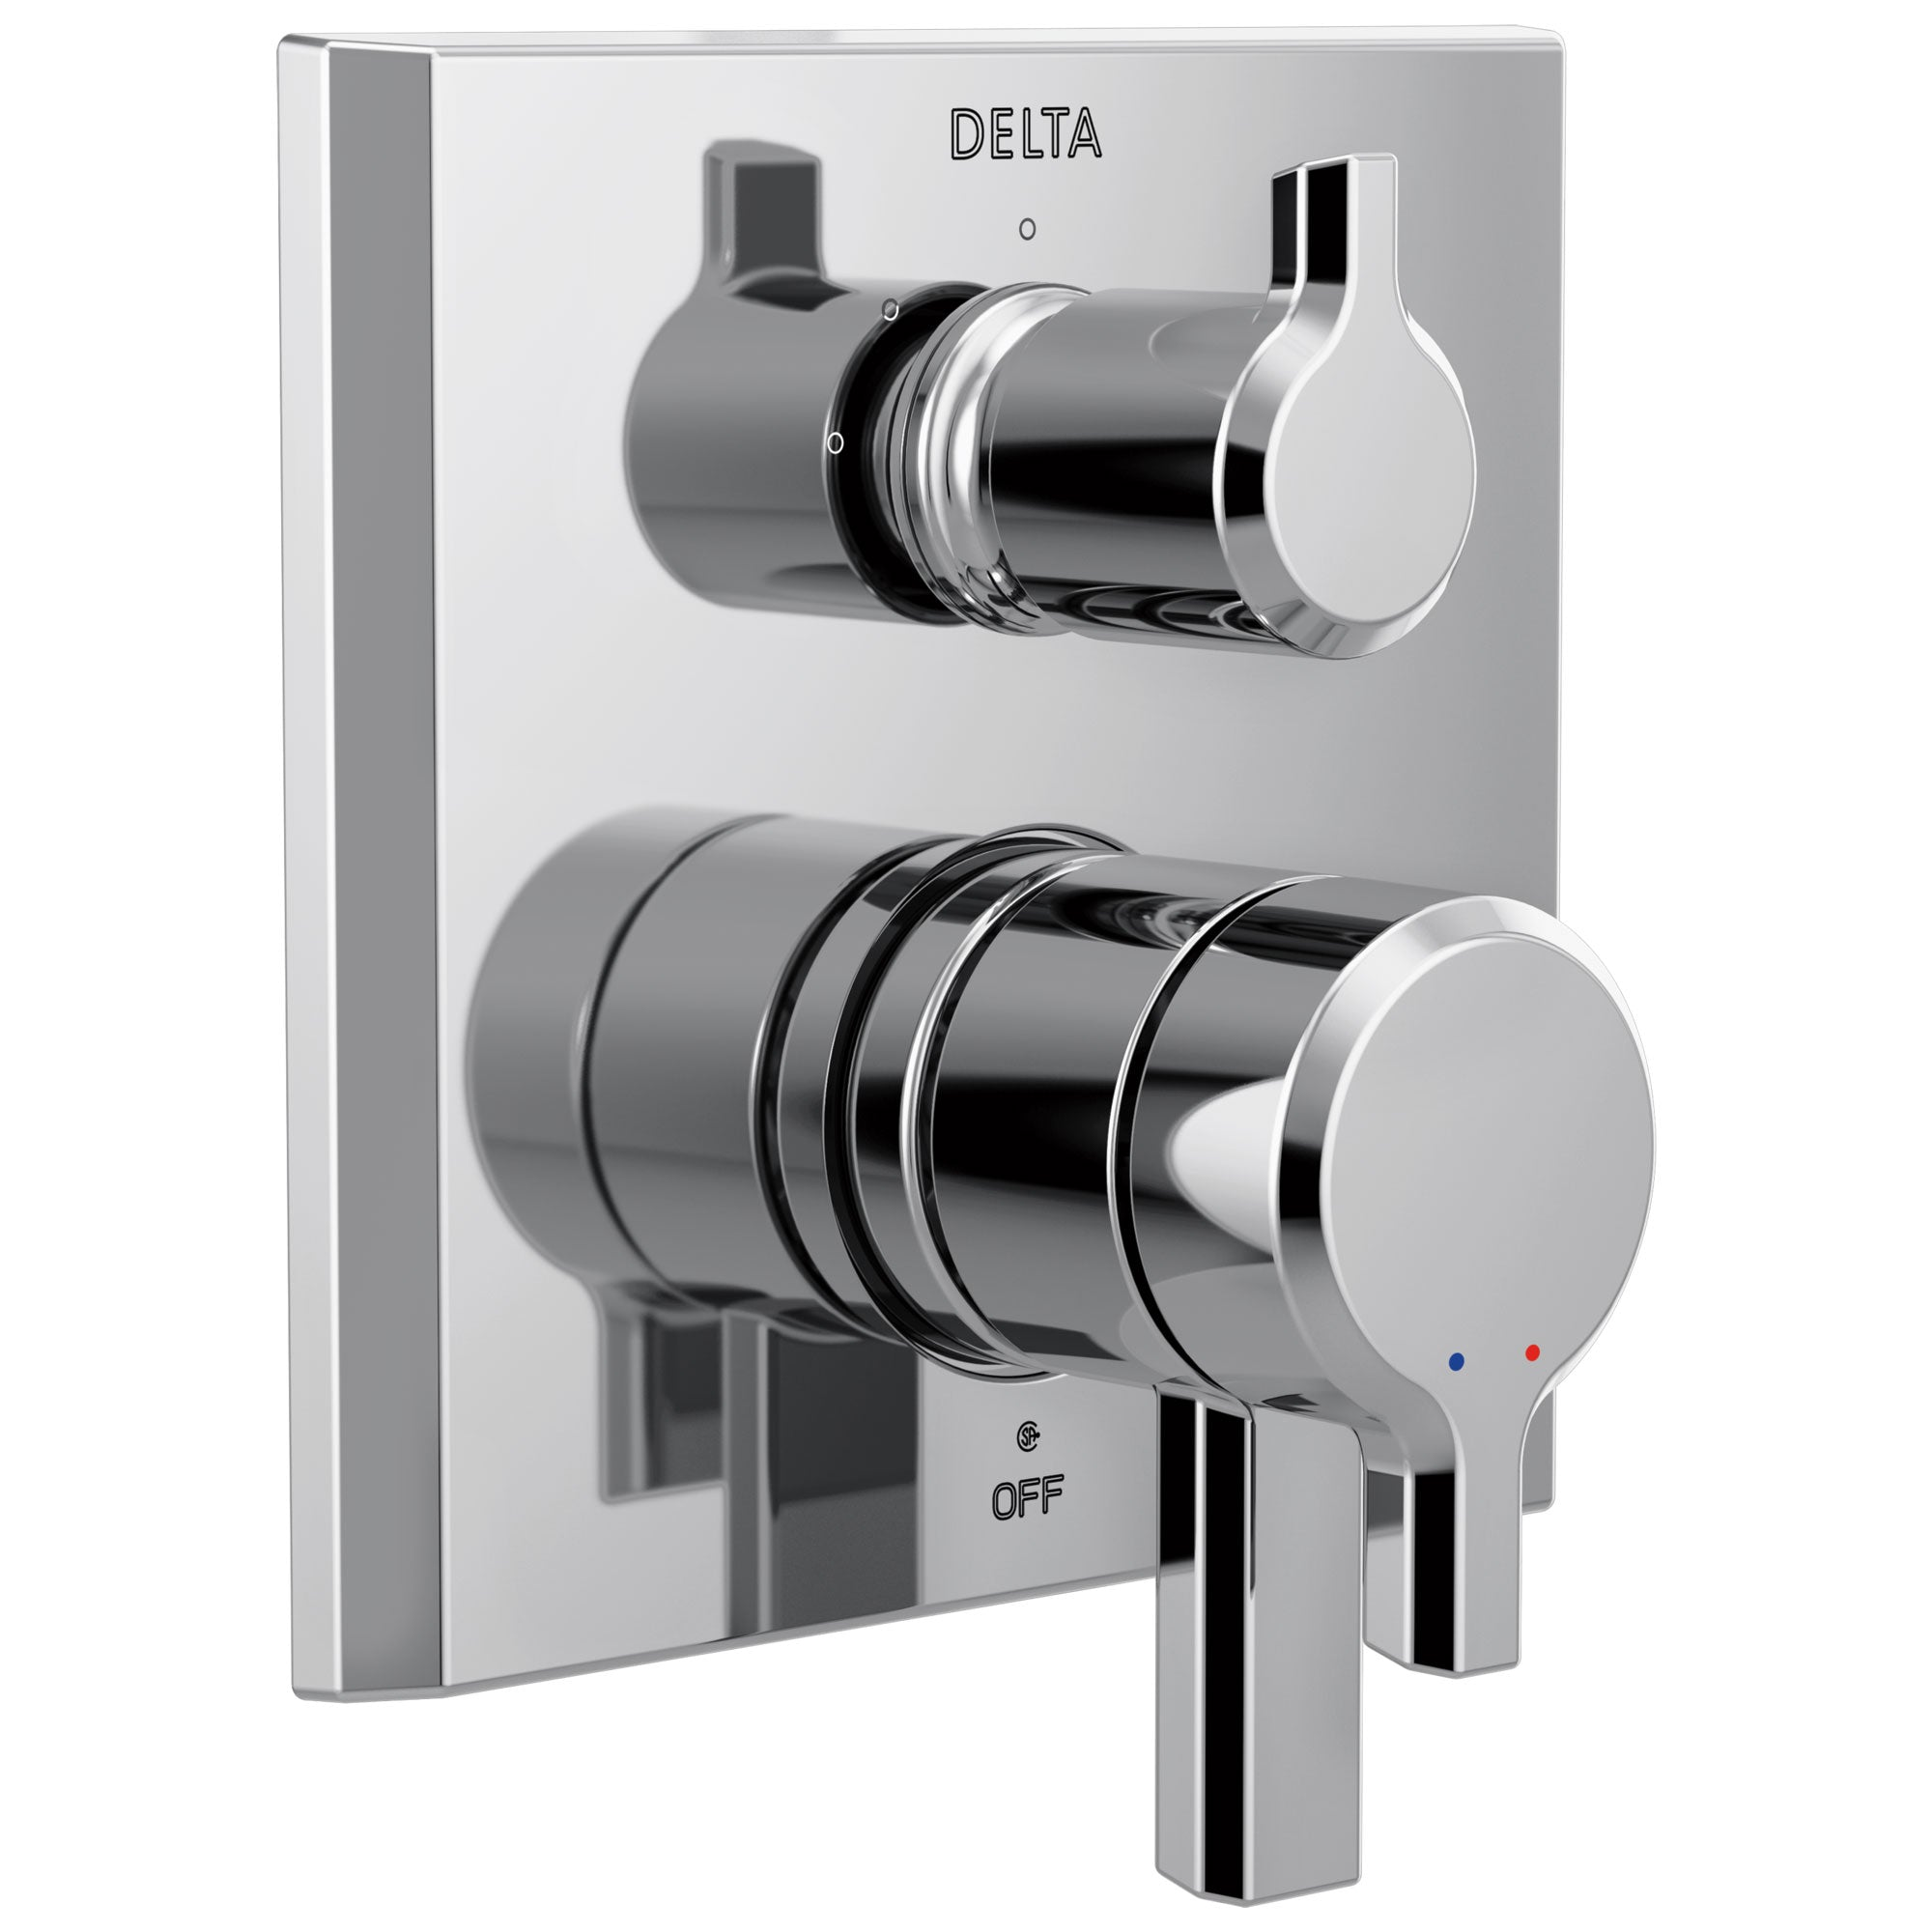 Delta Pivotal Chrome Finish 17 Series Shower Control Trim Kit with 3-Function Integrated Diverter (Requires Valve) DT27899